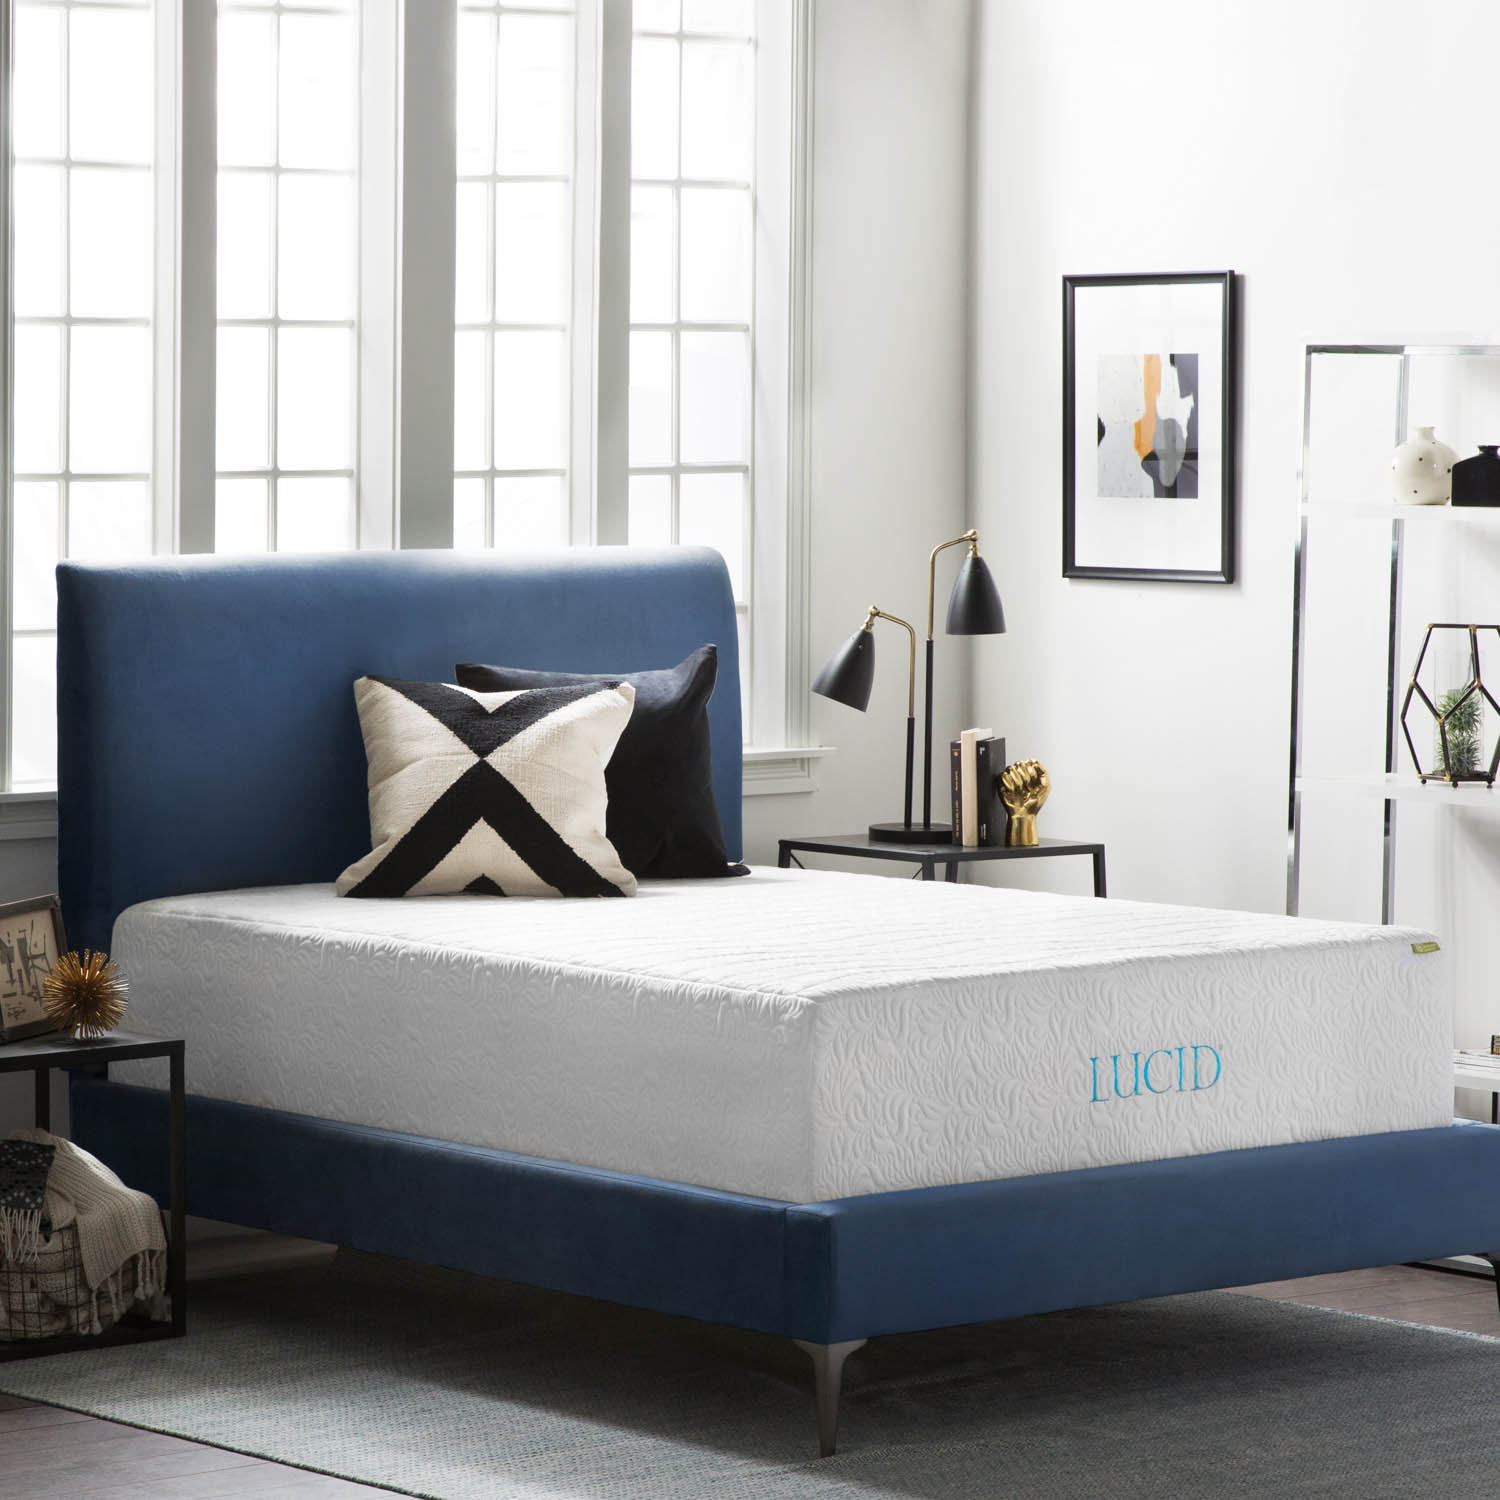 Lucid Deluxe 16 Inch Premium Support Plush Memory Foam Mattress by CVB.inc